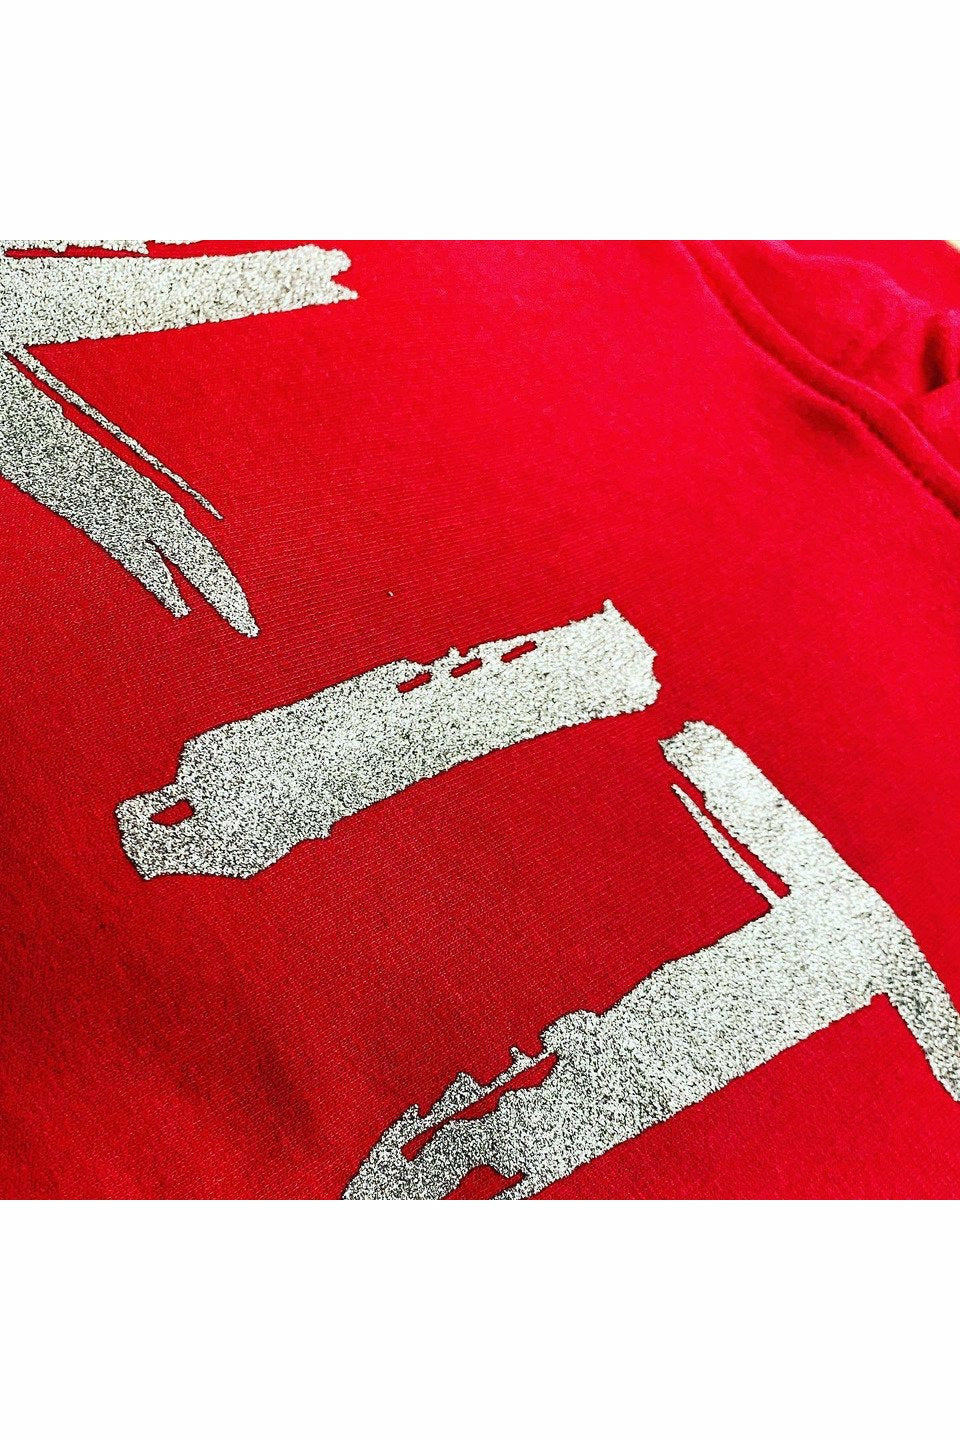 50 T-Shirts with a ONE COLOR Silver Glitter Print